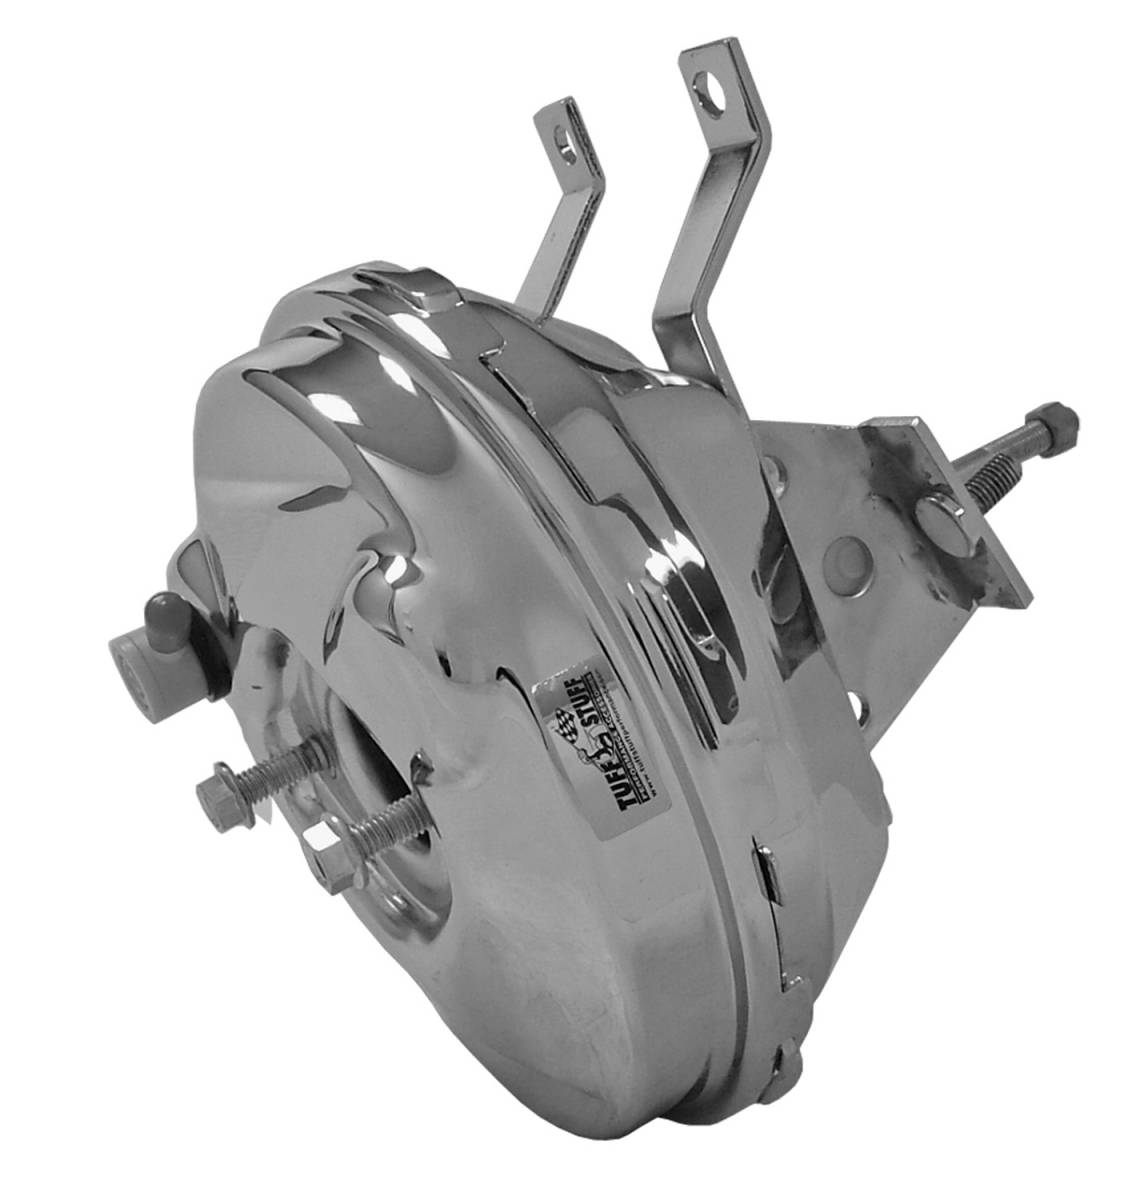 Tuff Stuff Performance - Power Brake Booster 9 in. Single Diaphragm Incl. Booster Mtg. Bracket/3/8 in.-16 Mtg. Studs And Nuts Chrome 2230NA